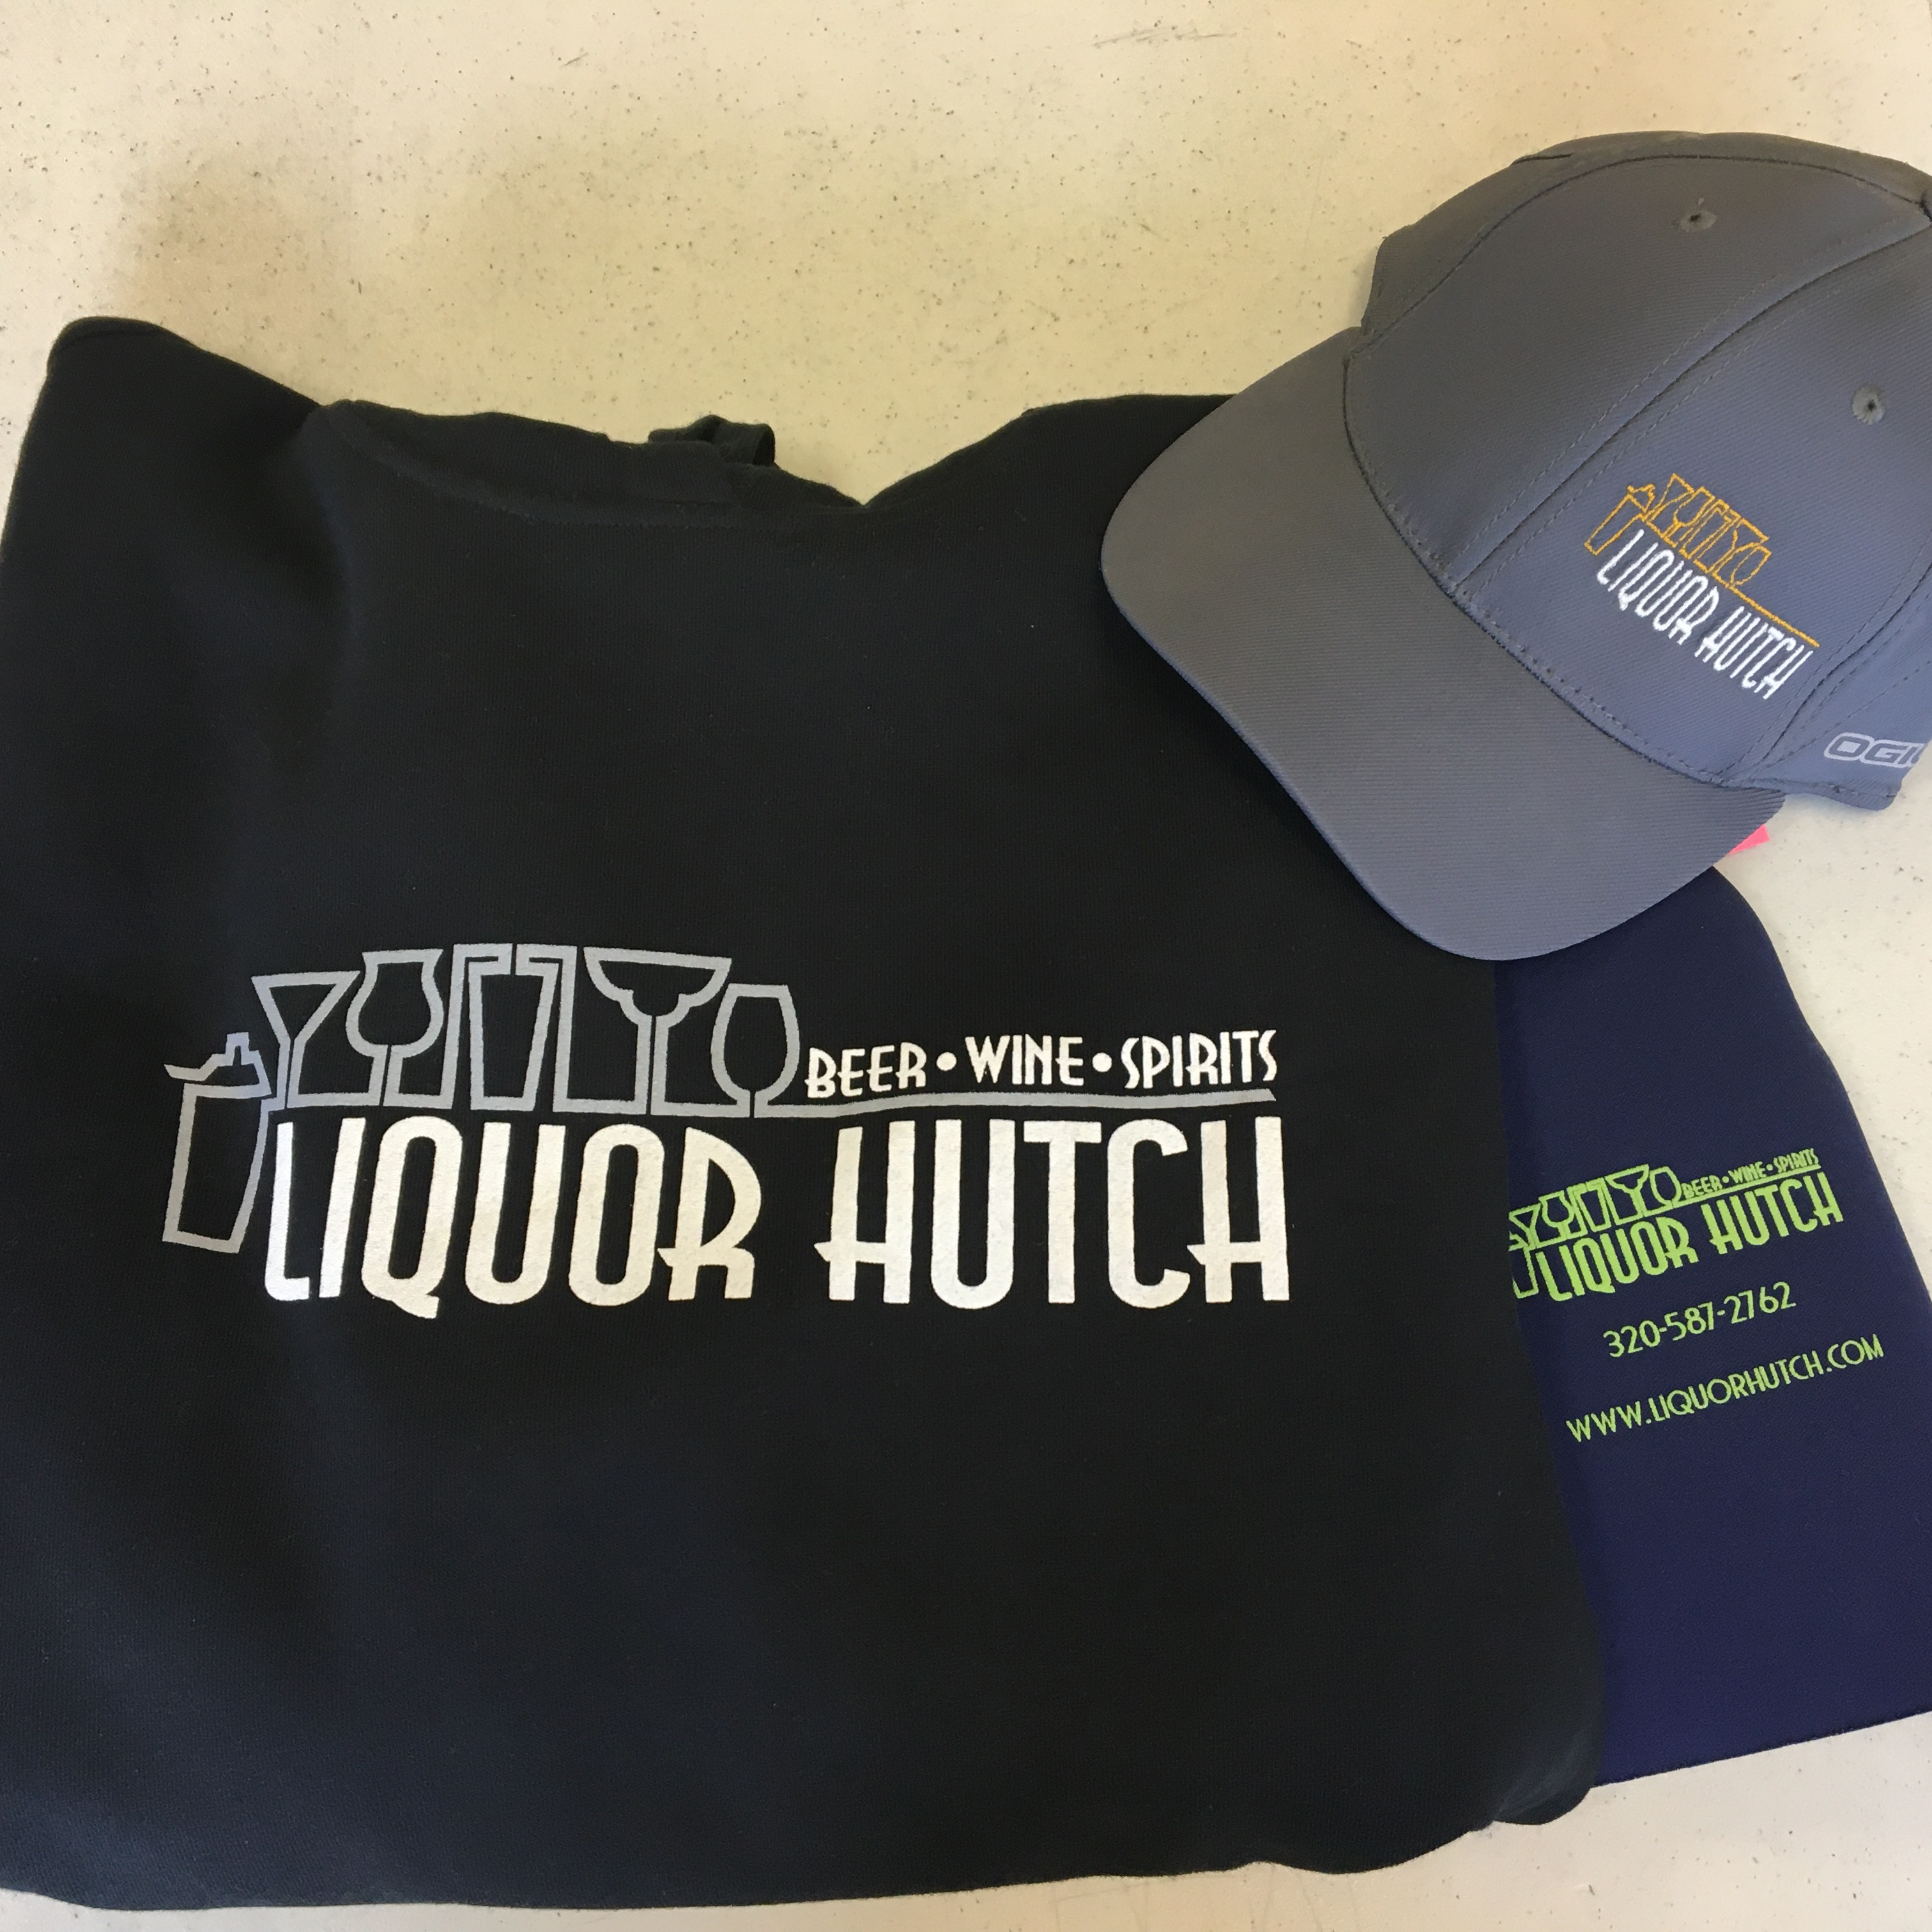 Liquor Hutch Merchandise